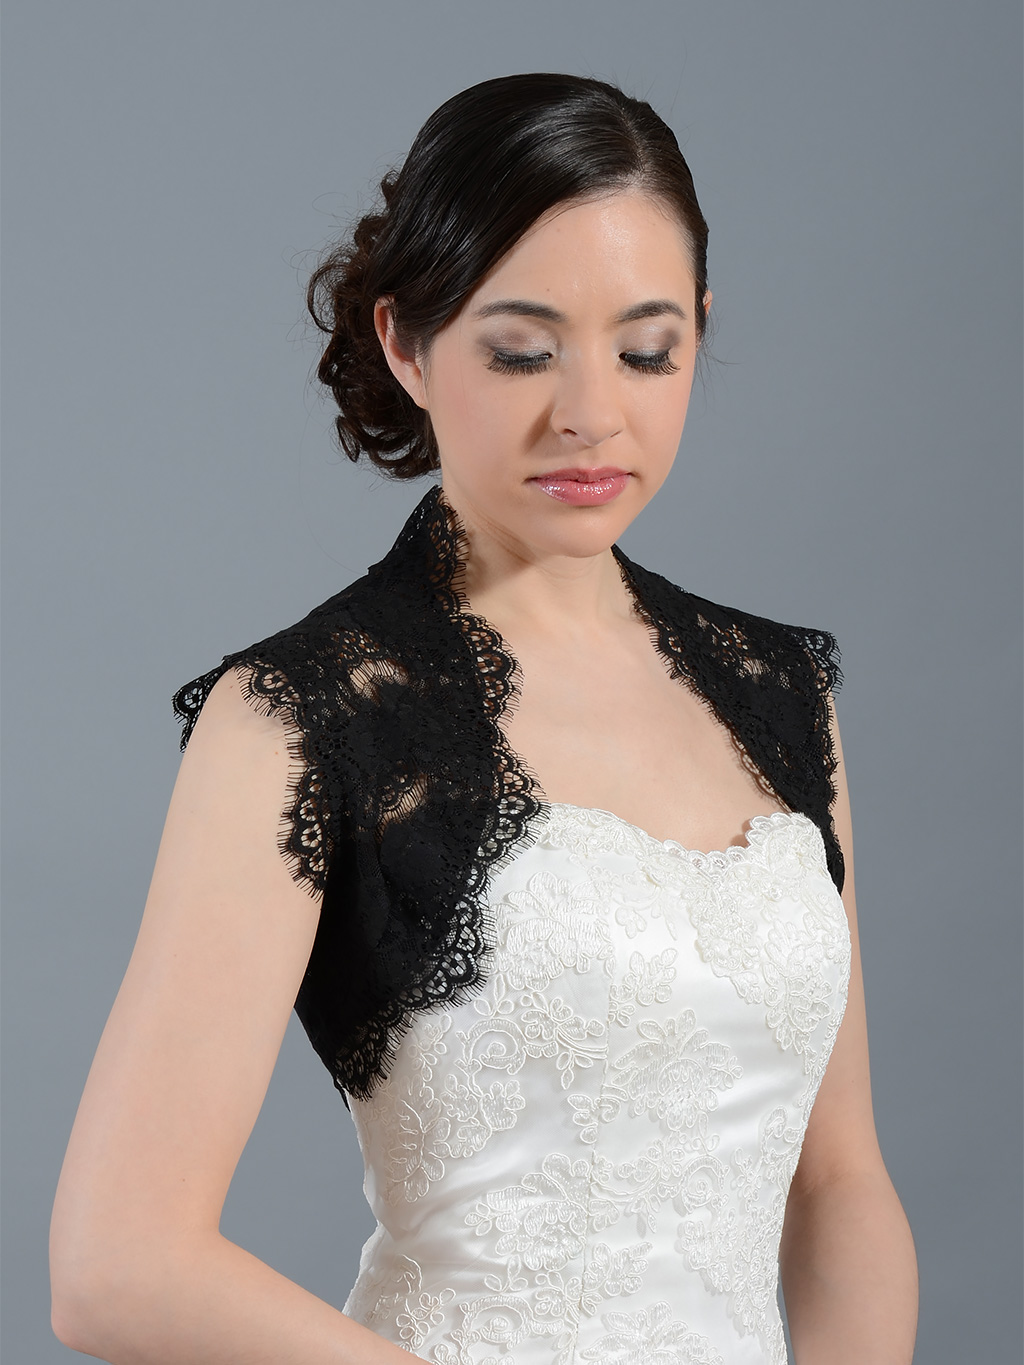 Black sleeveless bridal lace bolero jacket Lace_061_Black